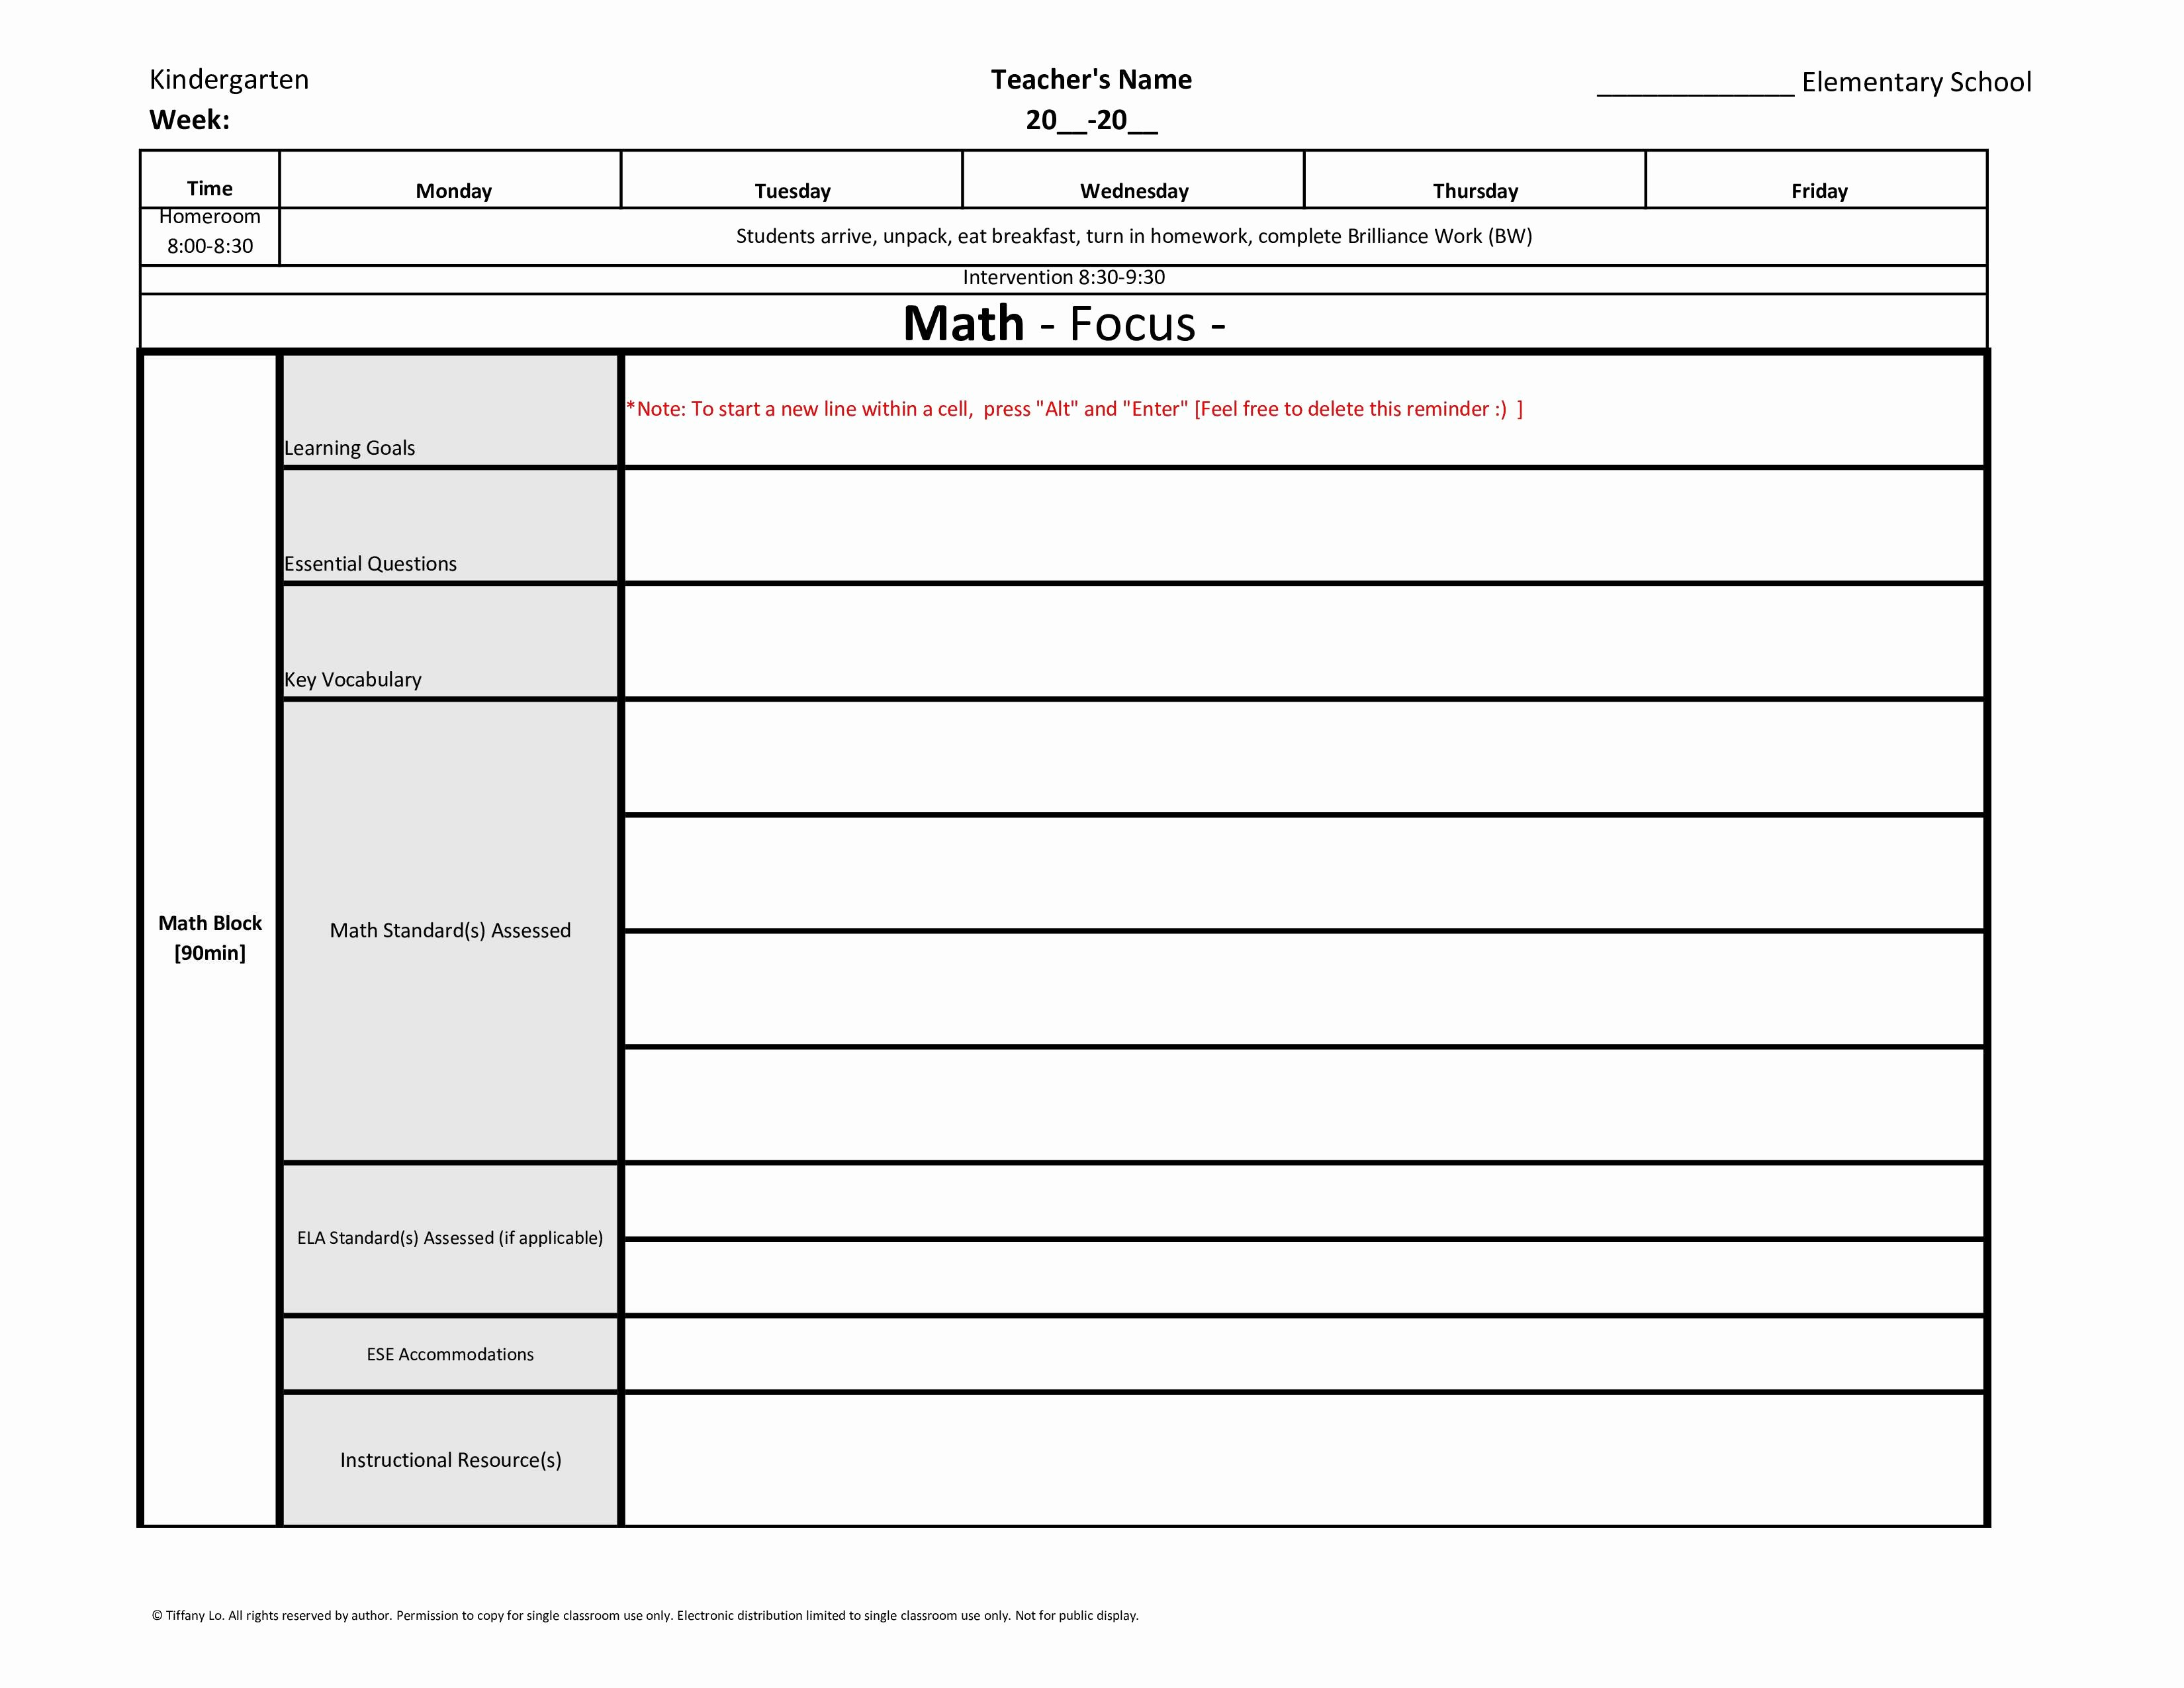 Weekly Lesson Plan Templates Lovely Kindergarten Weekly Lesson Plan Template W Florida